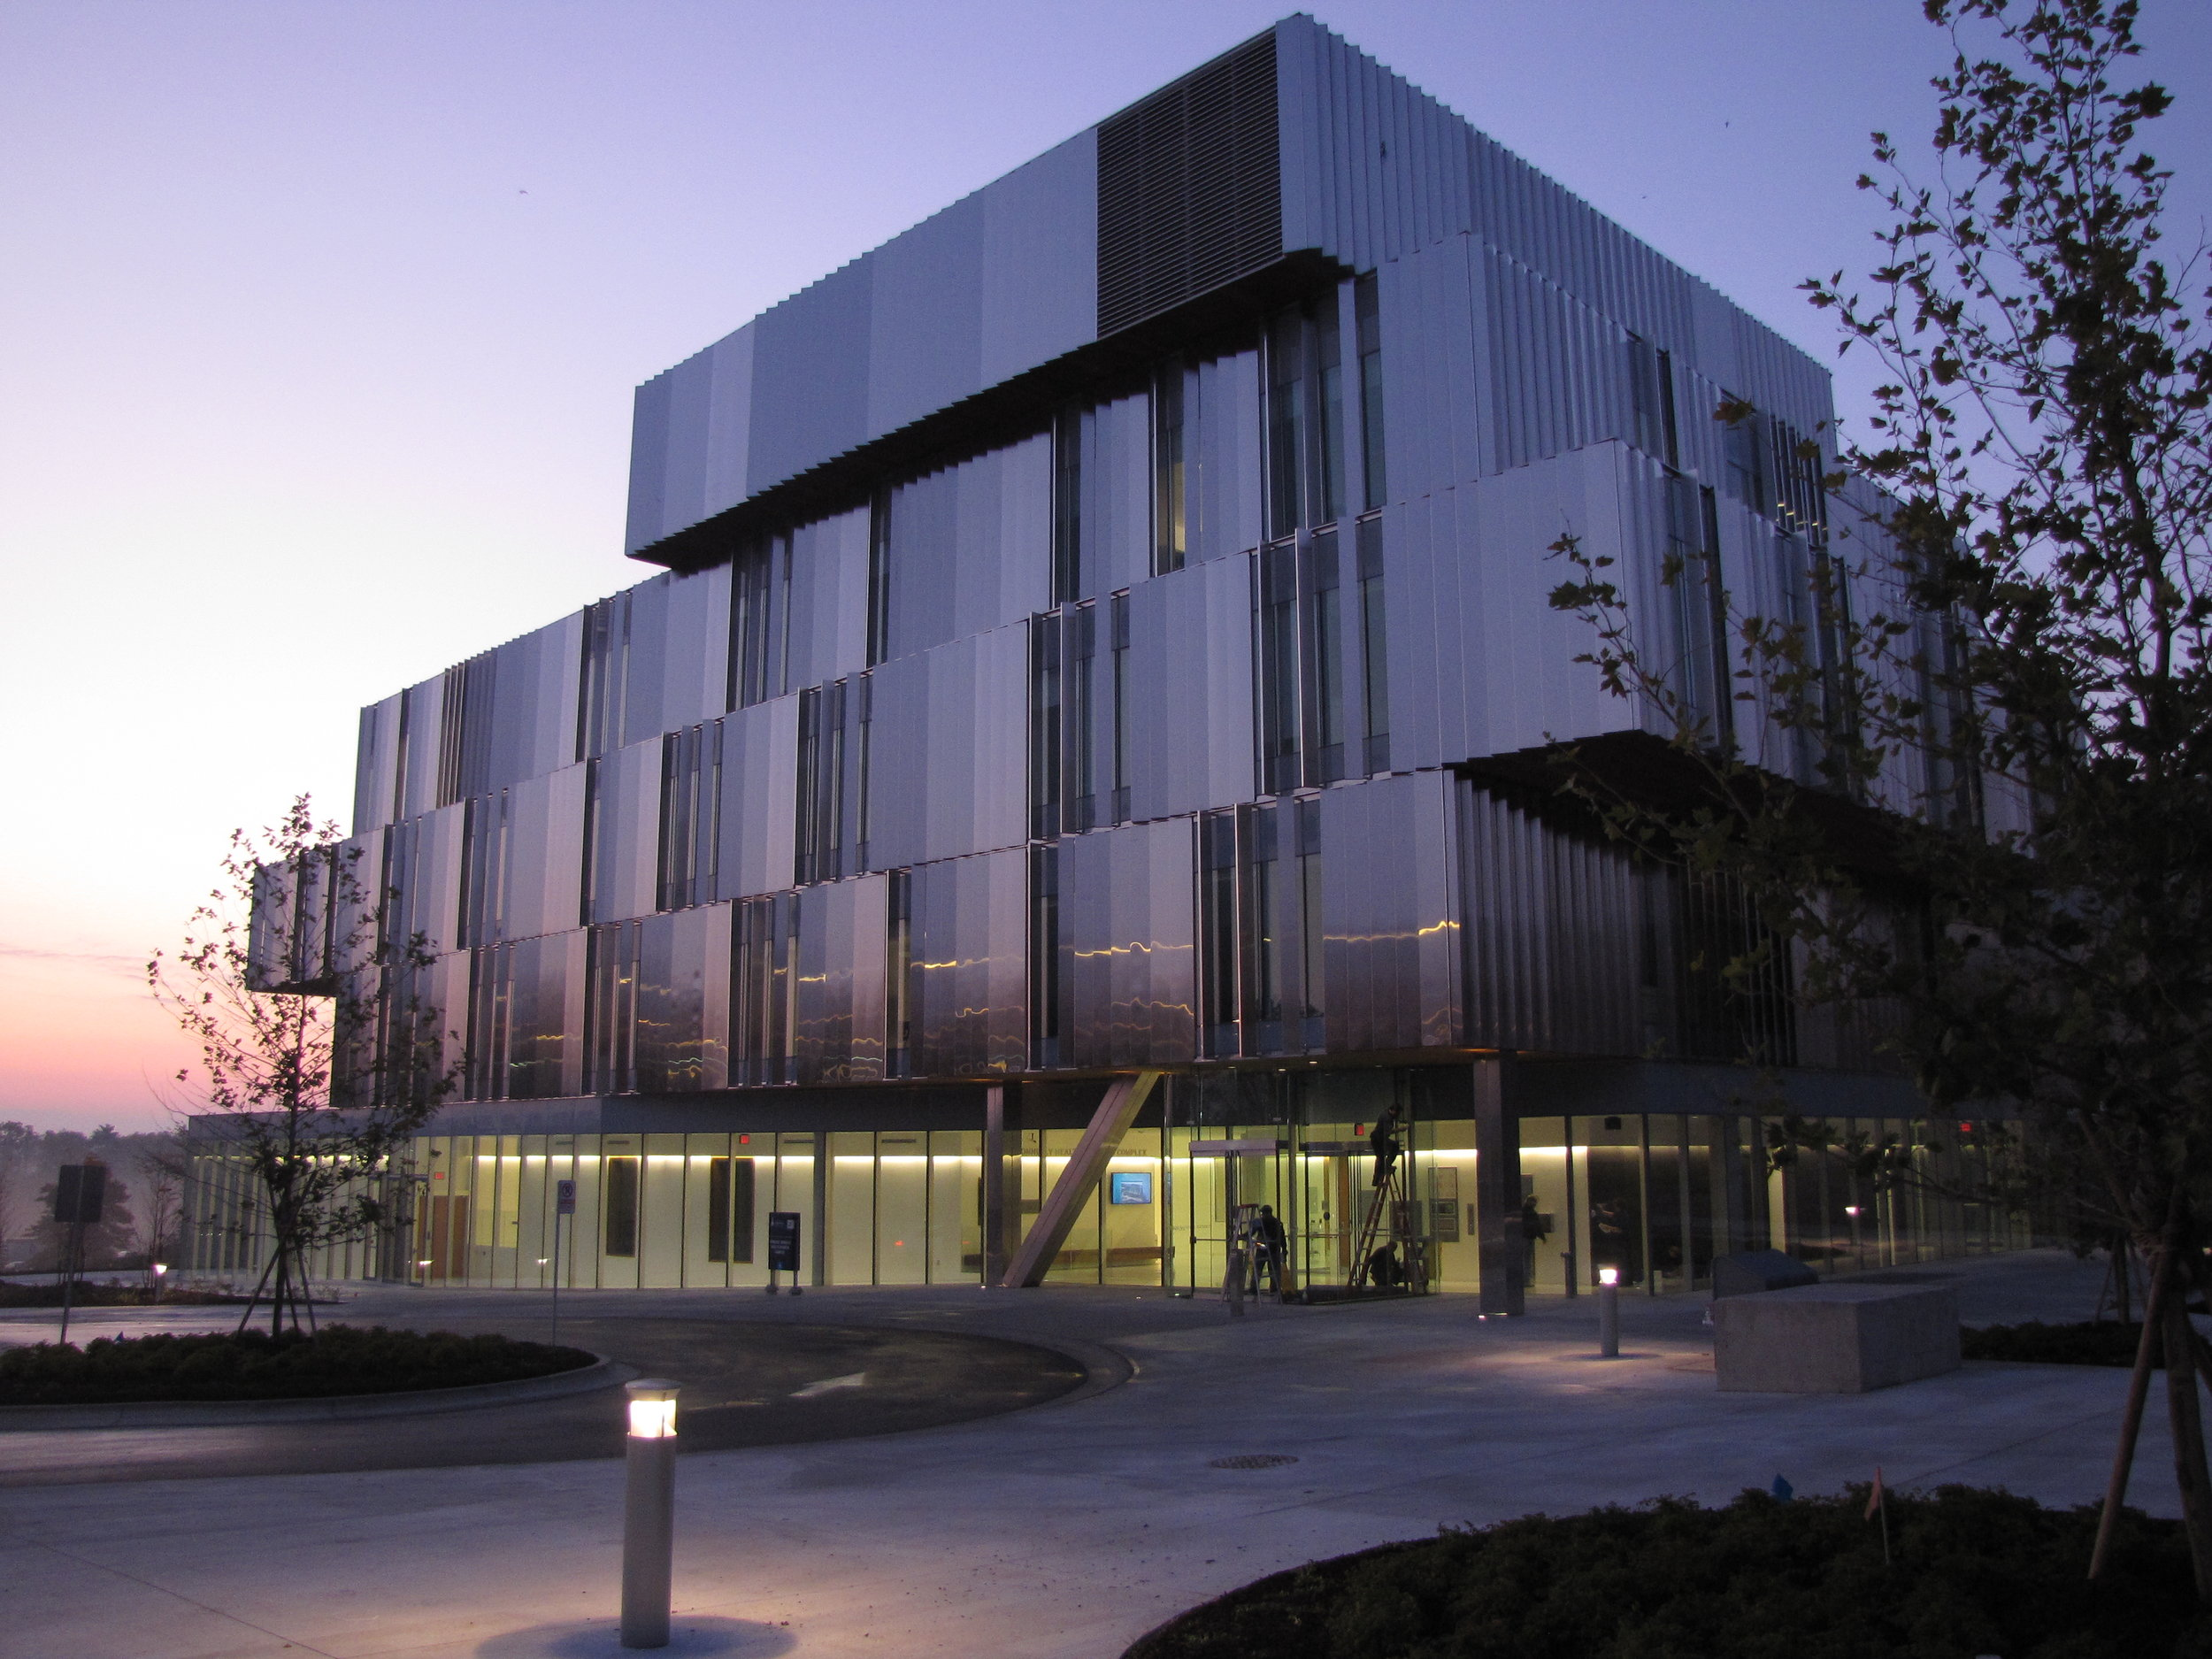 The Biomedical Communications graduate space is located on the third floor of the Terrence Donnelly Health Science Centre on the University of Toronto Mississauga campus.